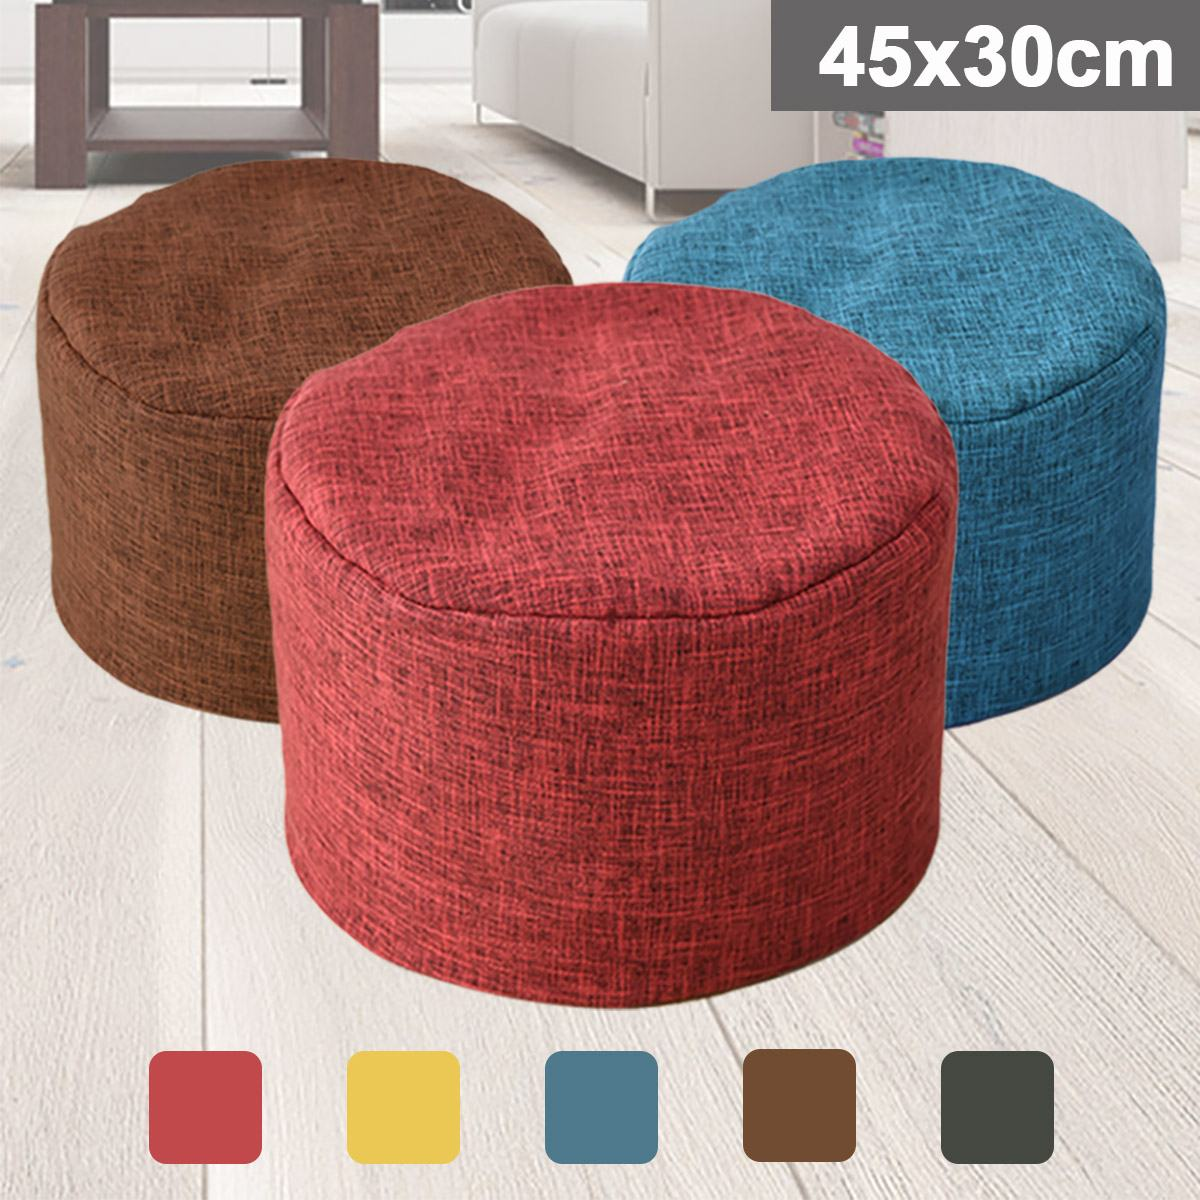 Lazy Sofa Waterproof Stuffed Animal Storage Toy Bean Bag Solid Color Oxford Chair Cover Large Beanbag(filling Is Not Included)